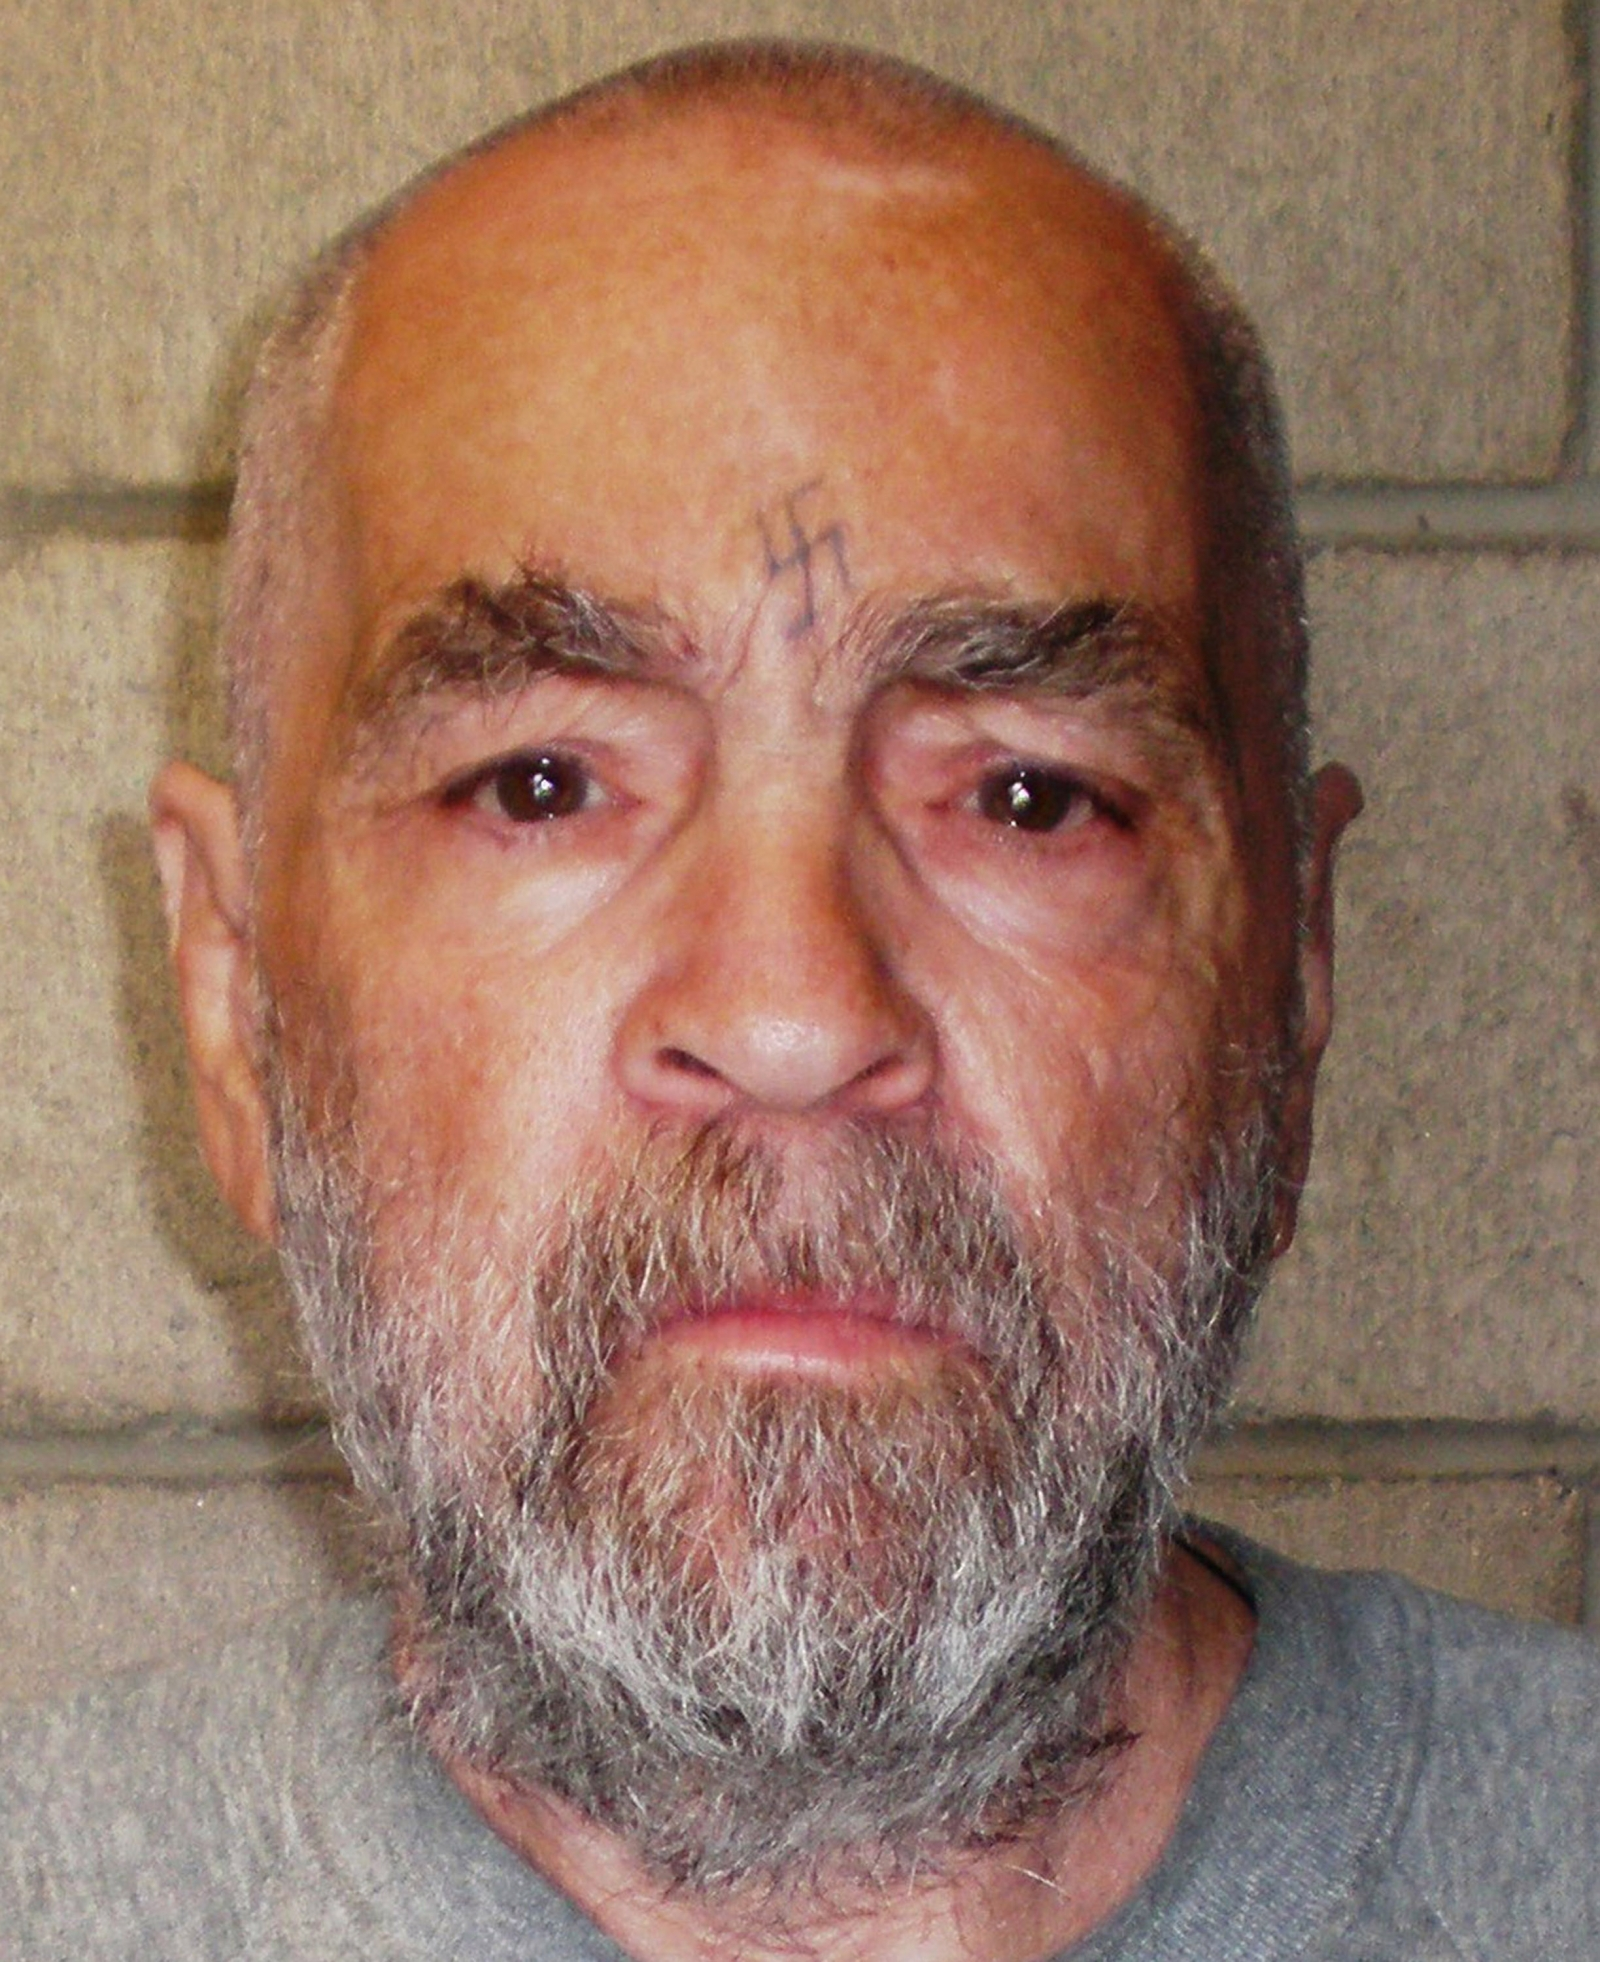 Charles Manson, pictured here in a prison mugshot, is to wed next month. (Getty/handout.)